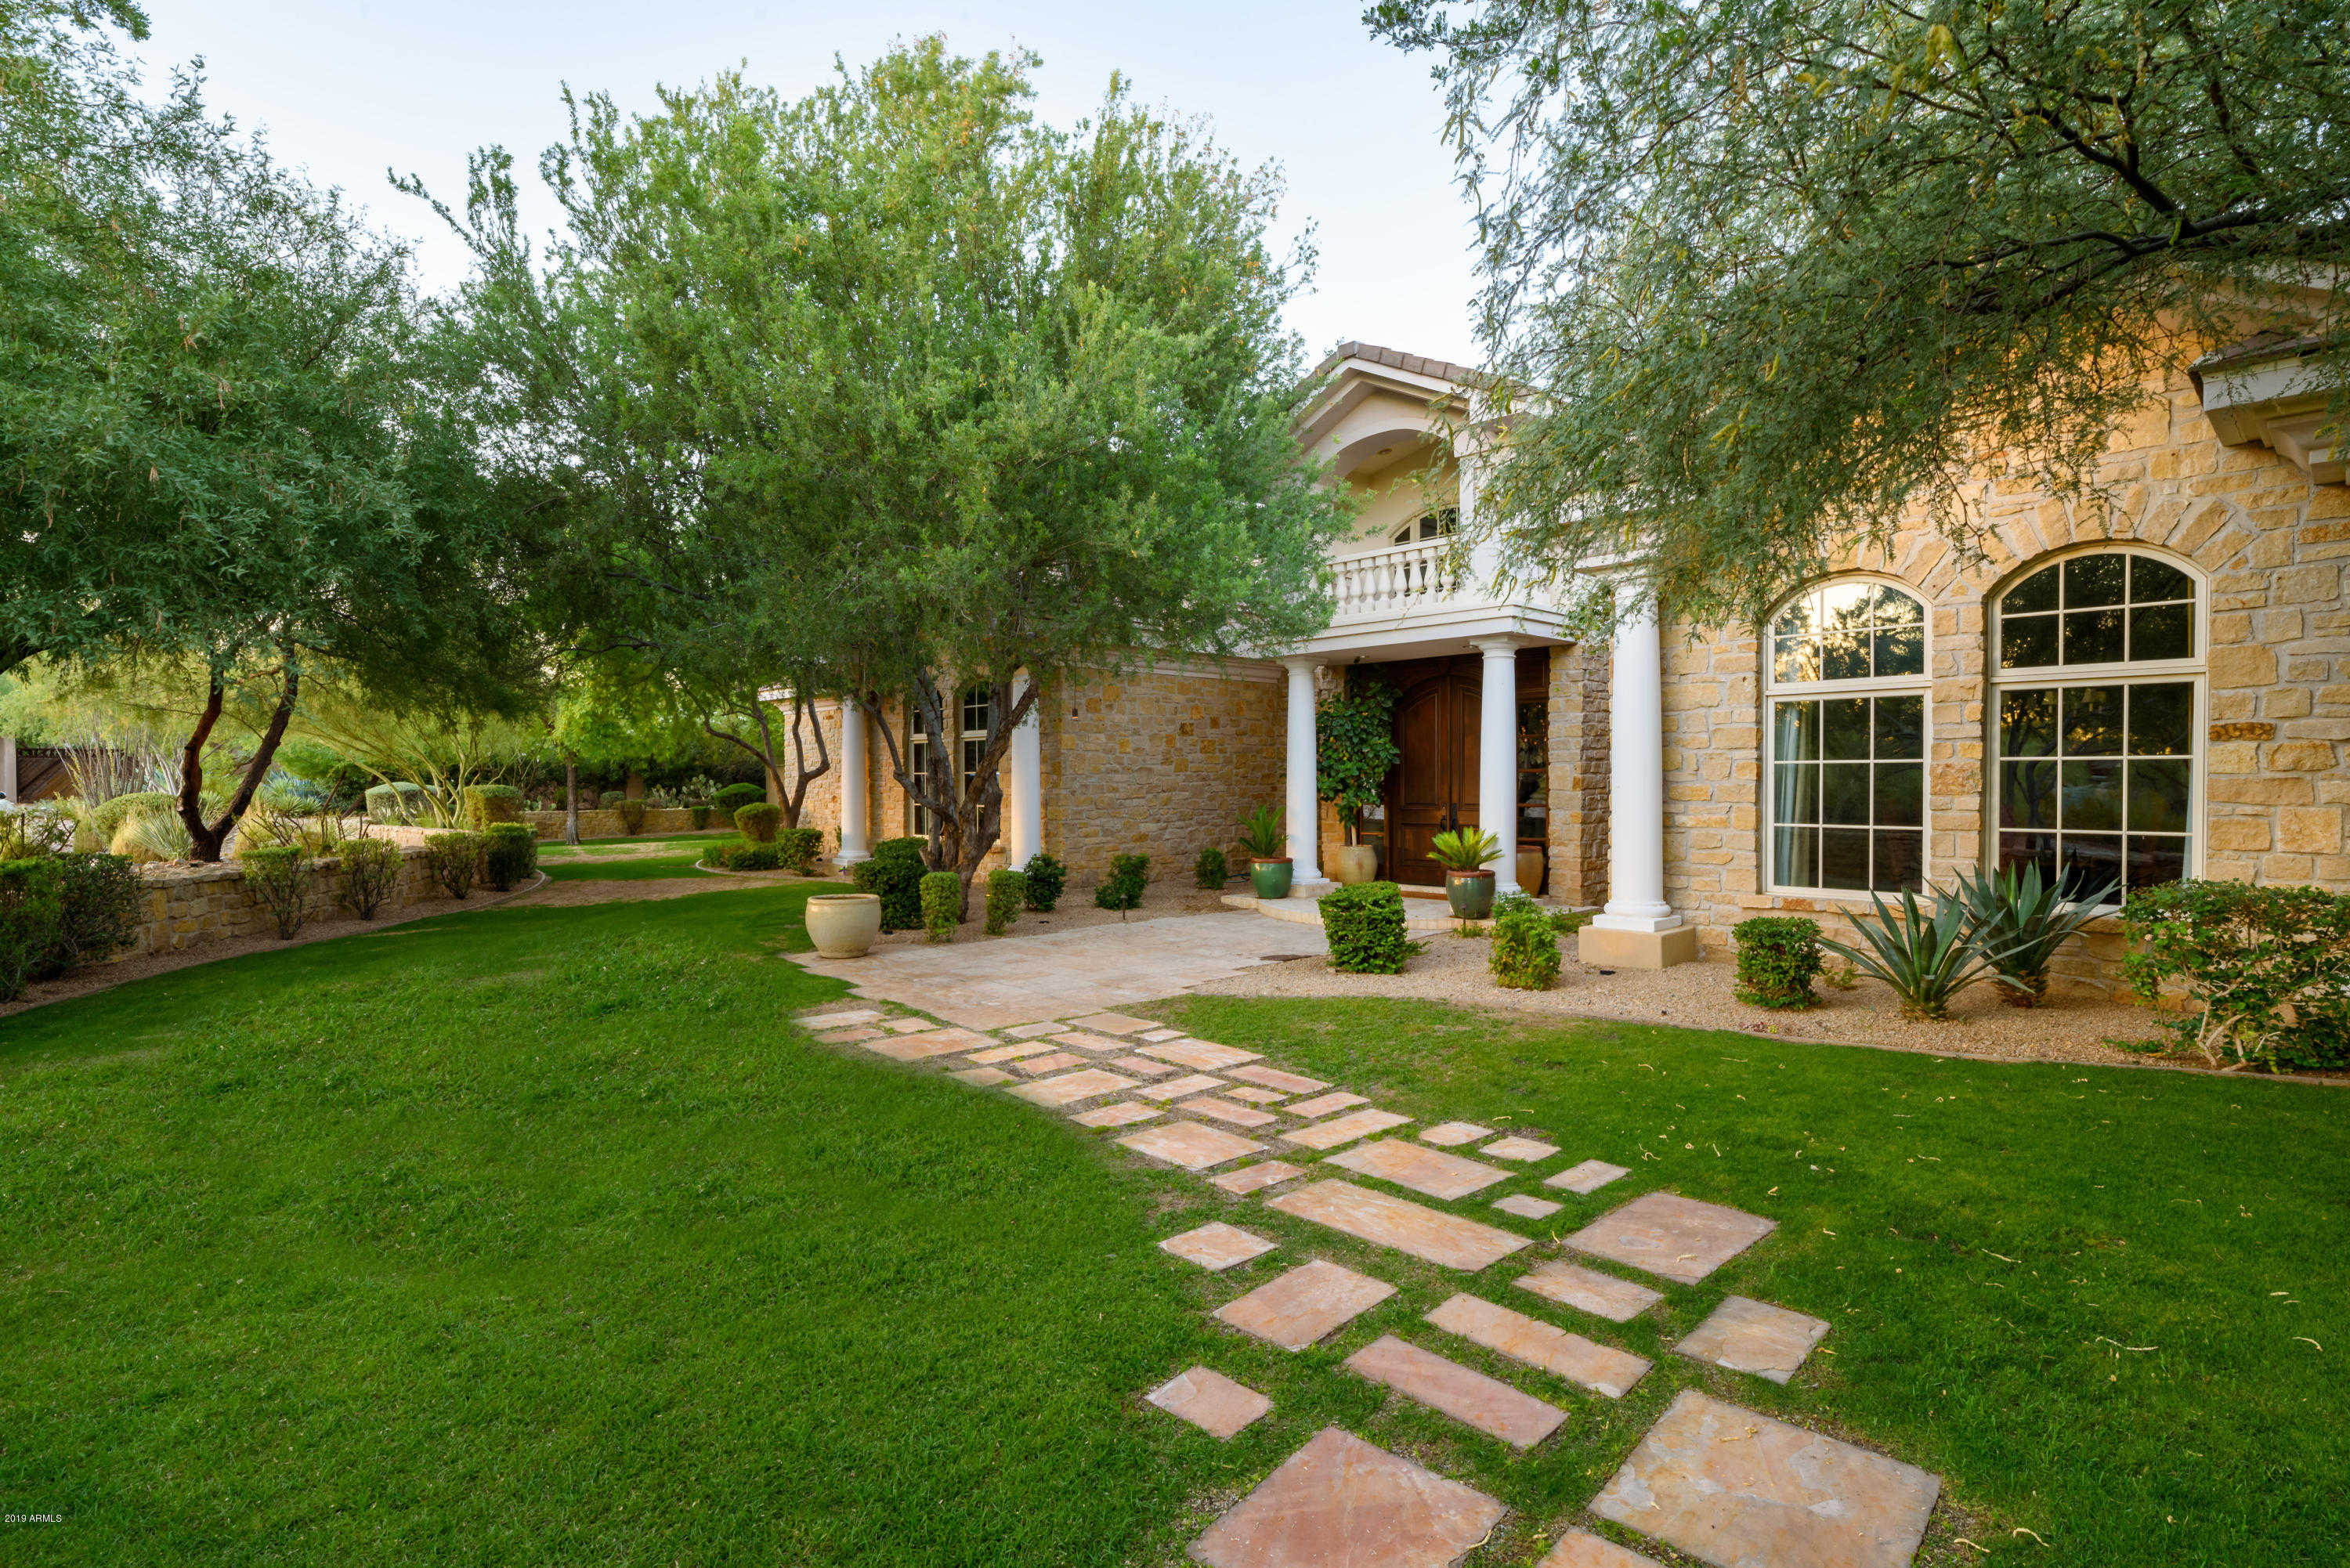 $2,750,000 - 6Br/7Ba - Home for Sale in Paradise Valley, Paradise Valley